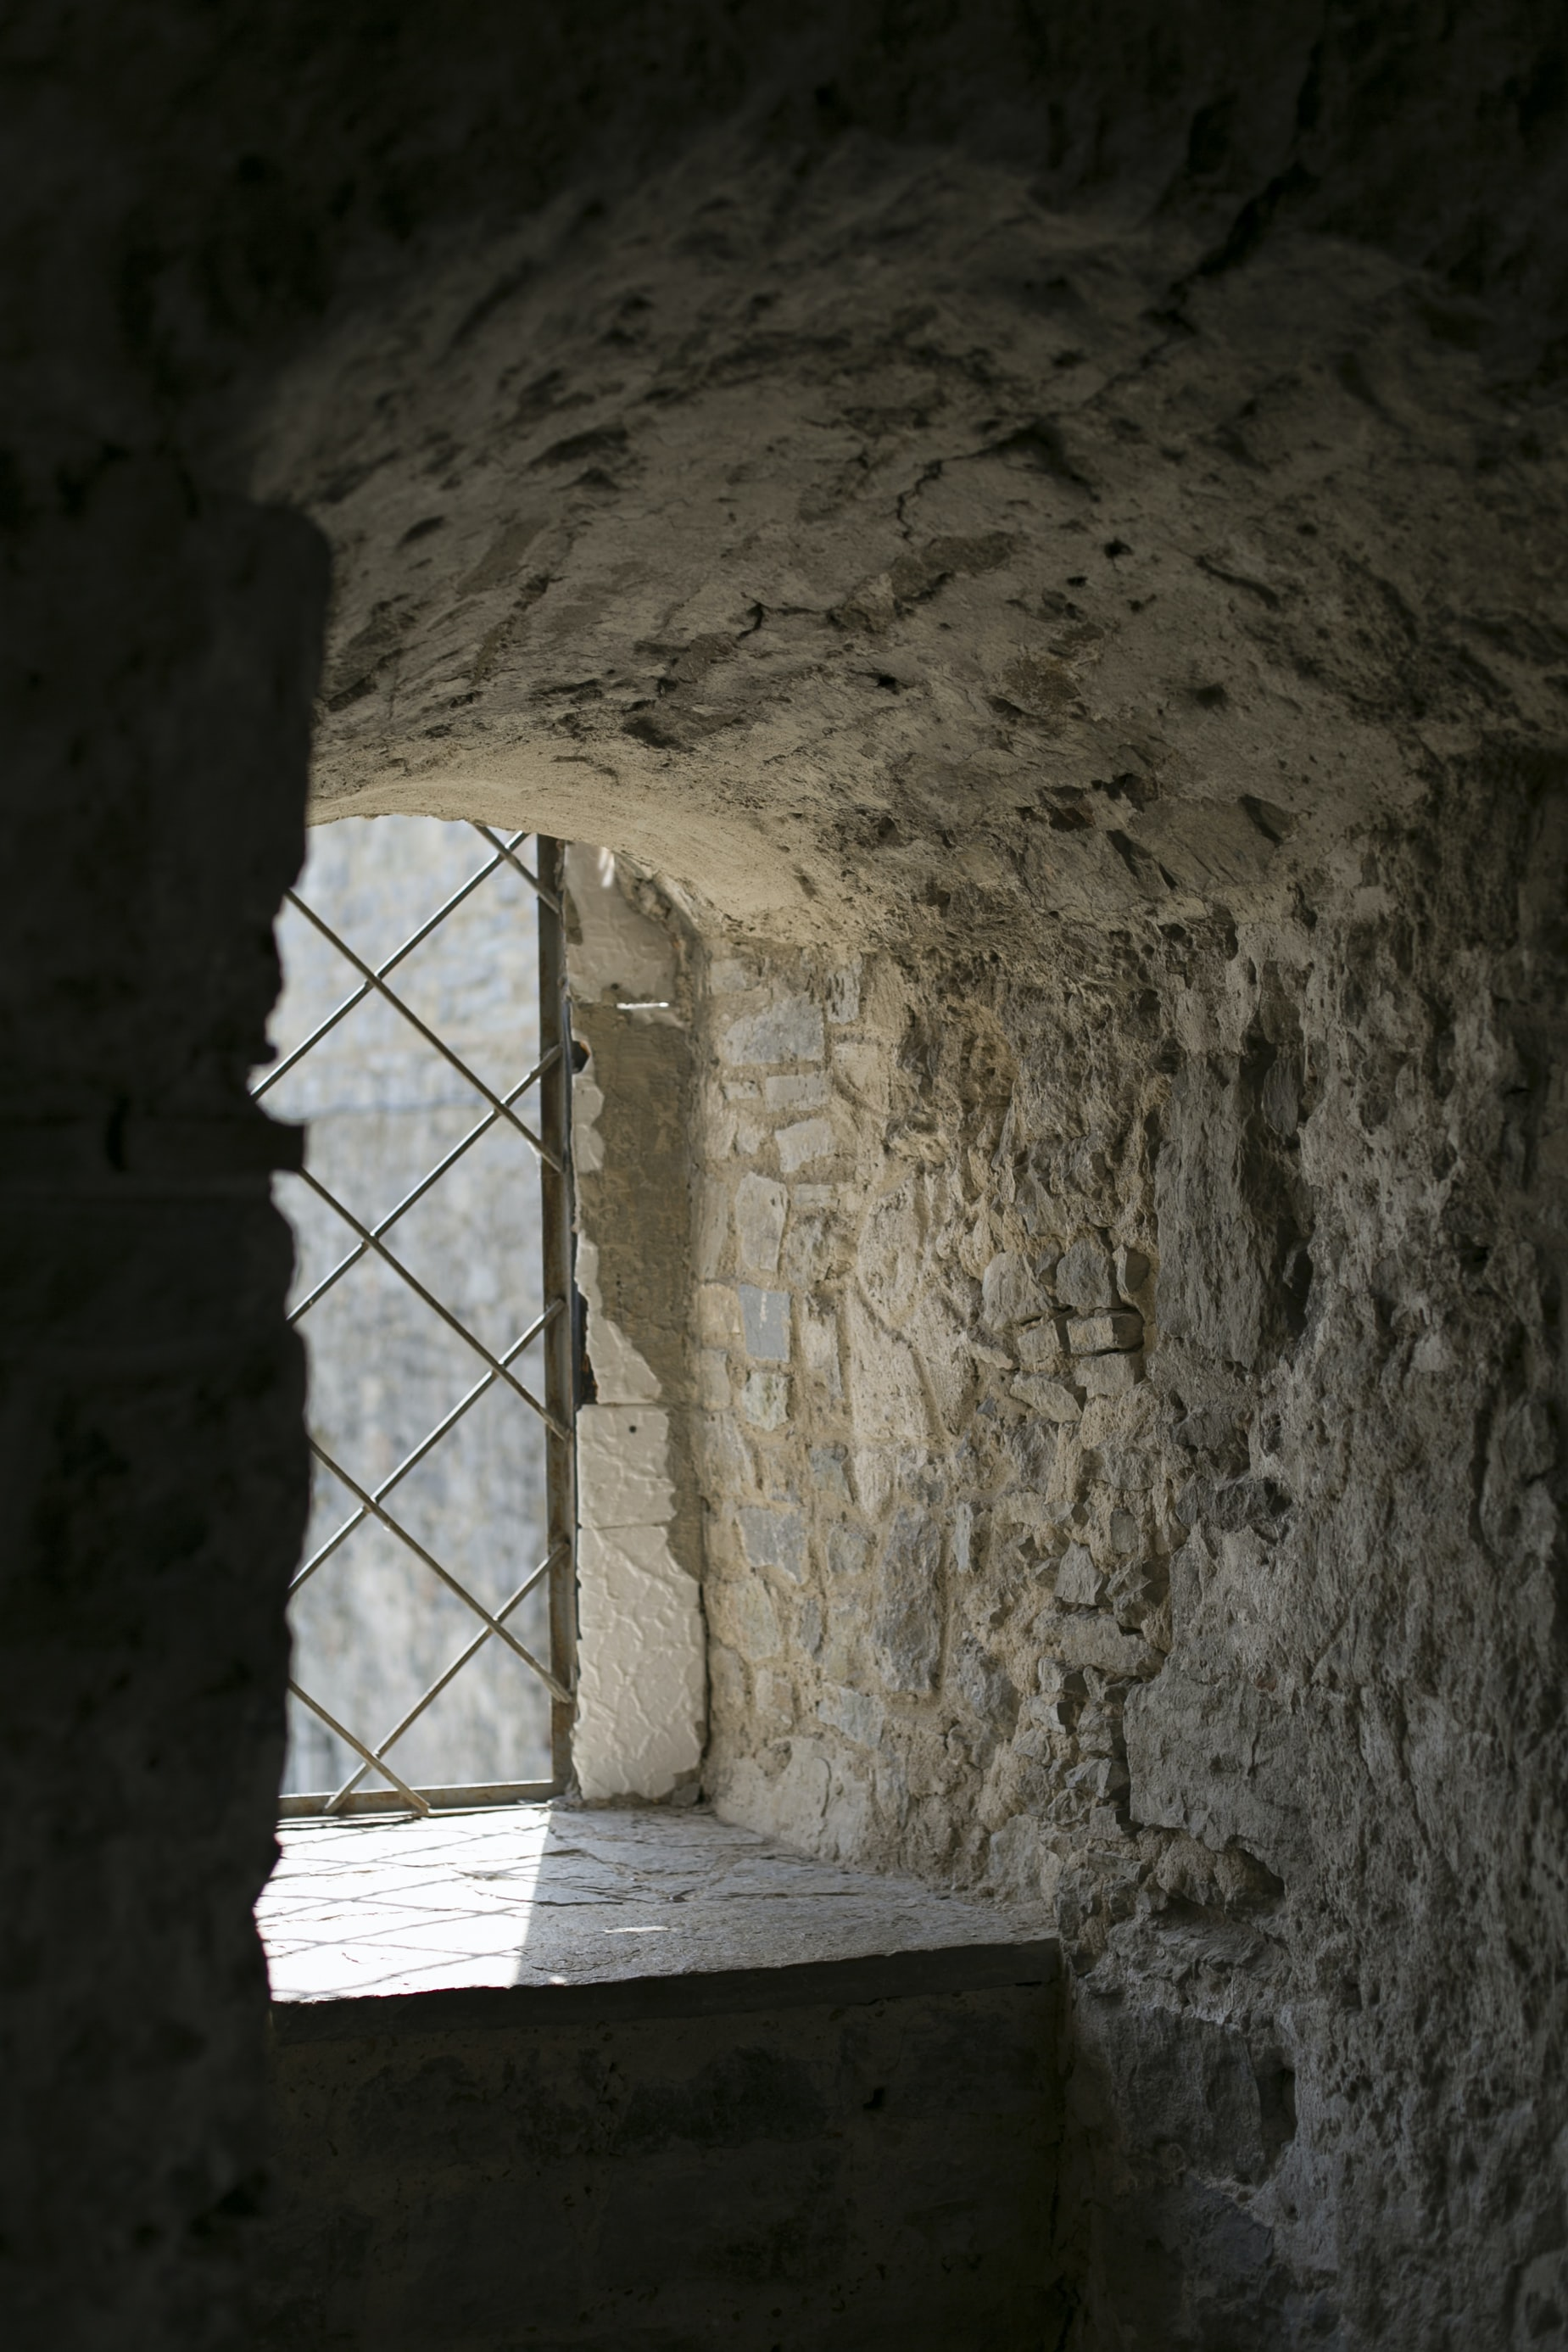 photo of rock house near window